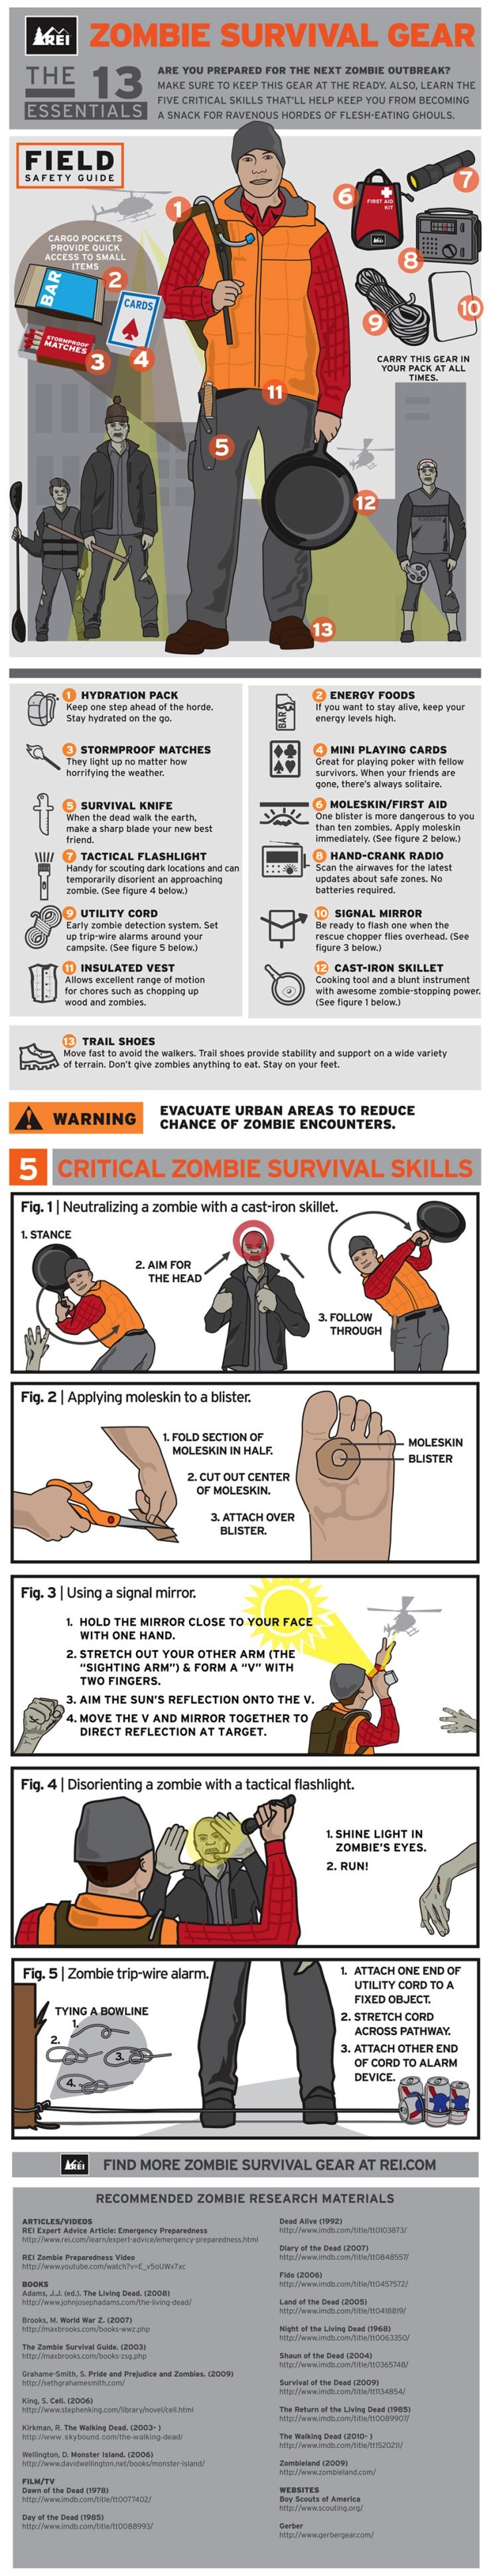 Zombie Survival Gear #infographic